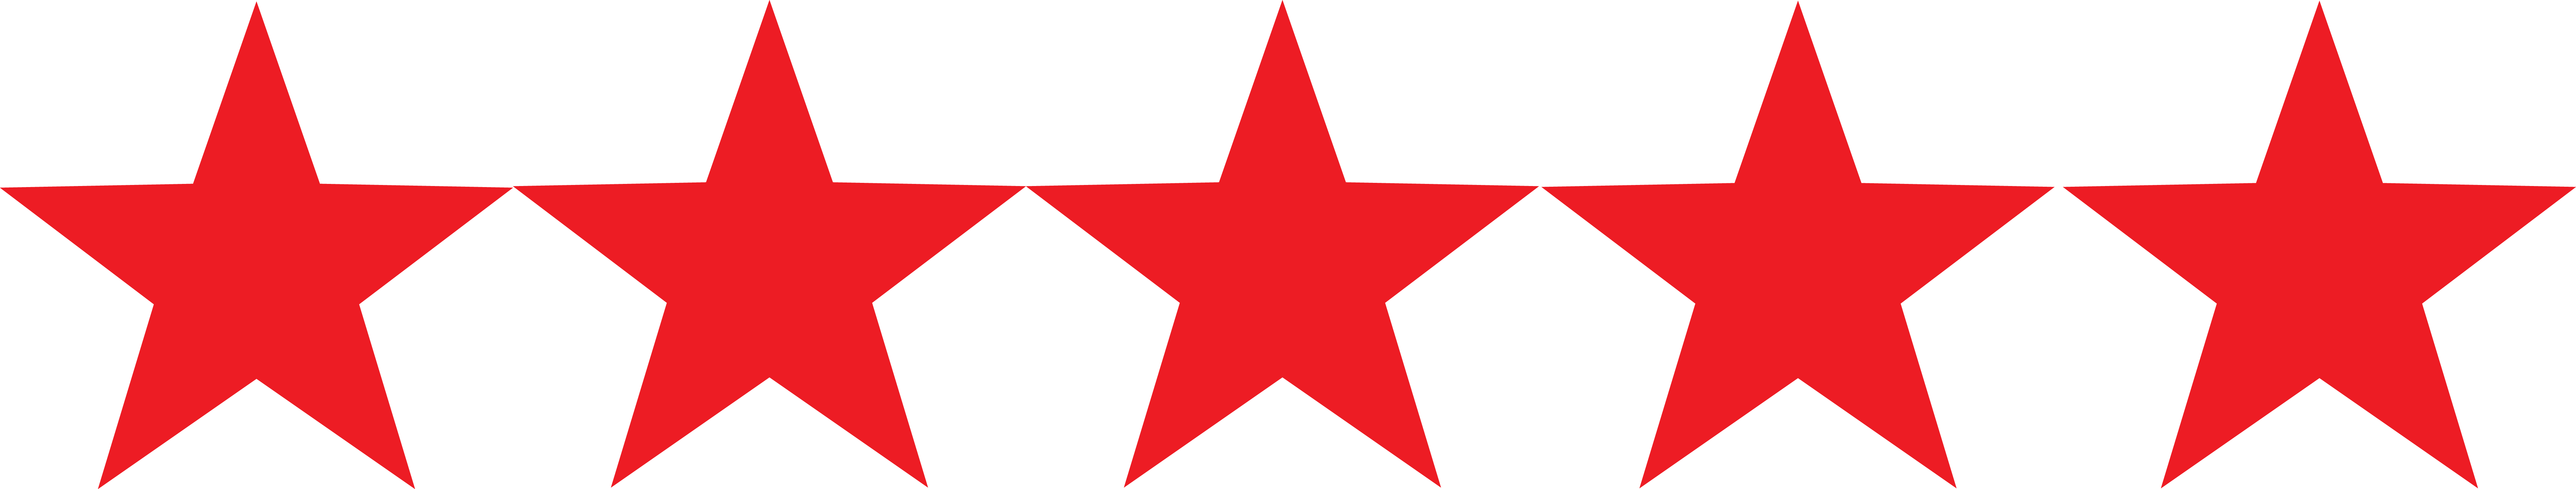 2 star clipart vector freeuse Red Star Clipart vector freeuse